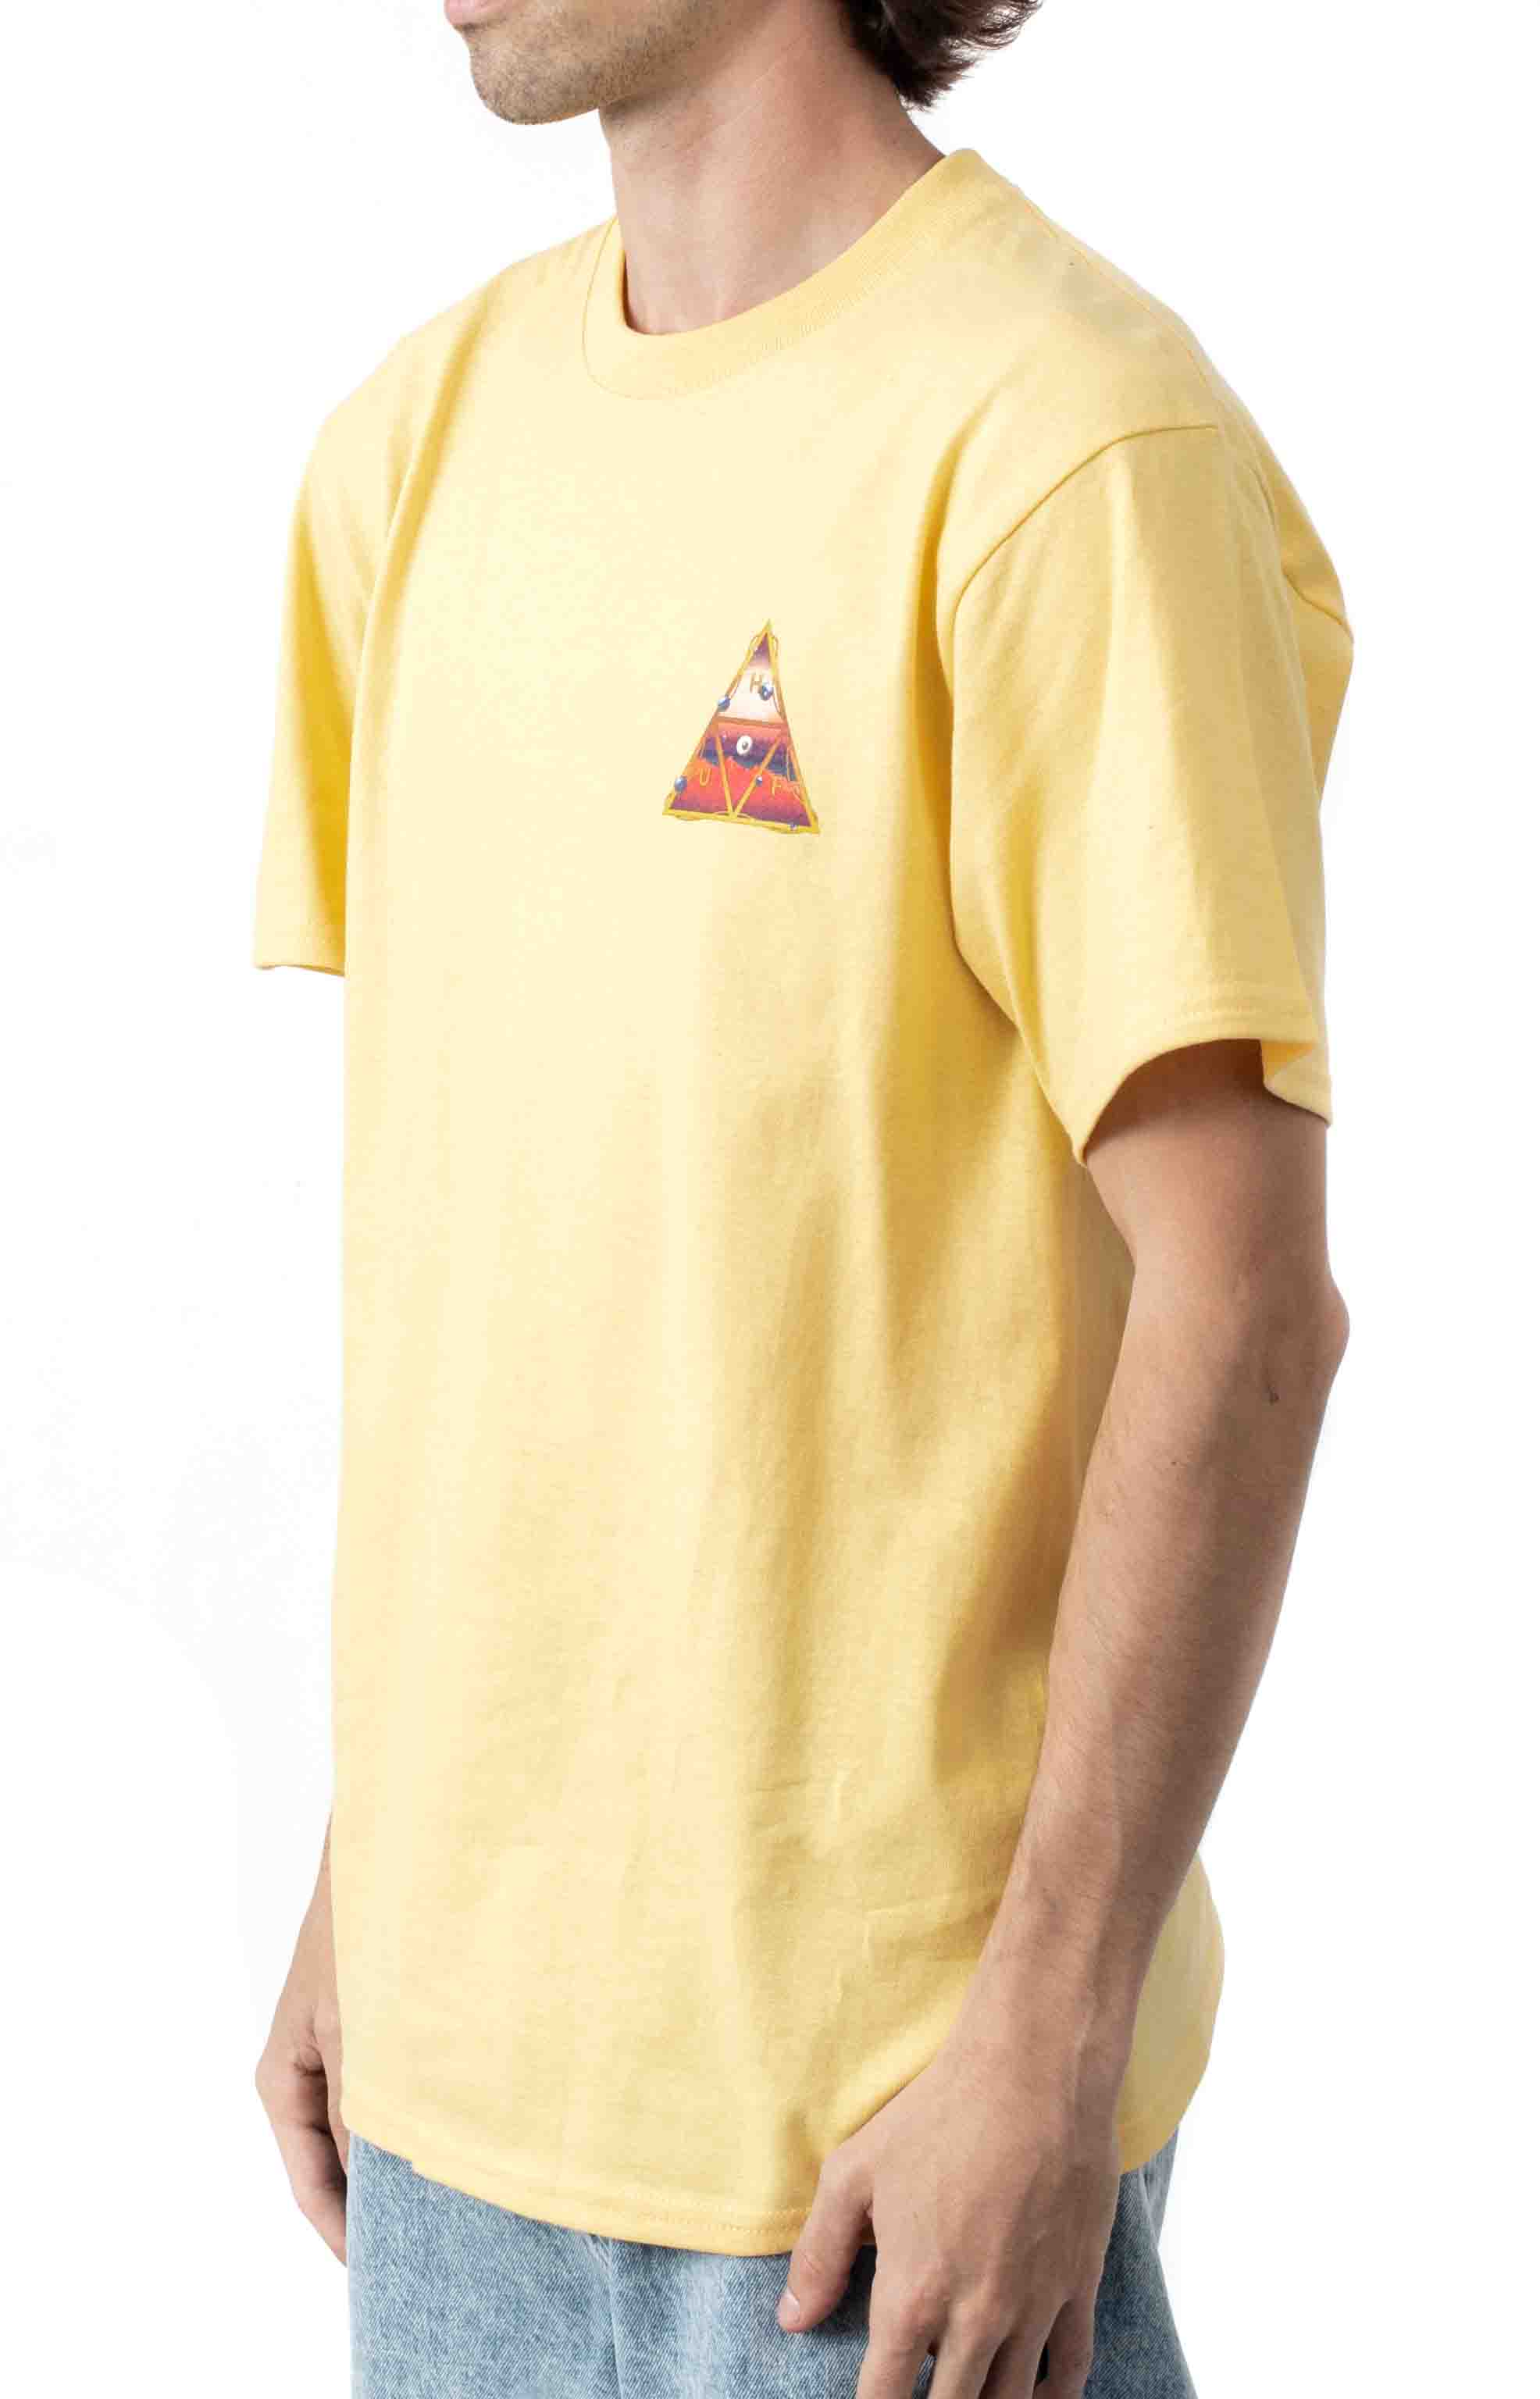 Altered State TT T-Shirt - Washed Yellow  2